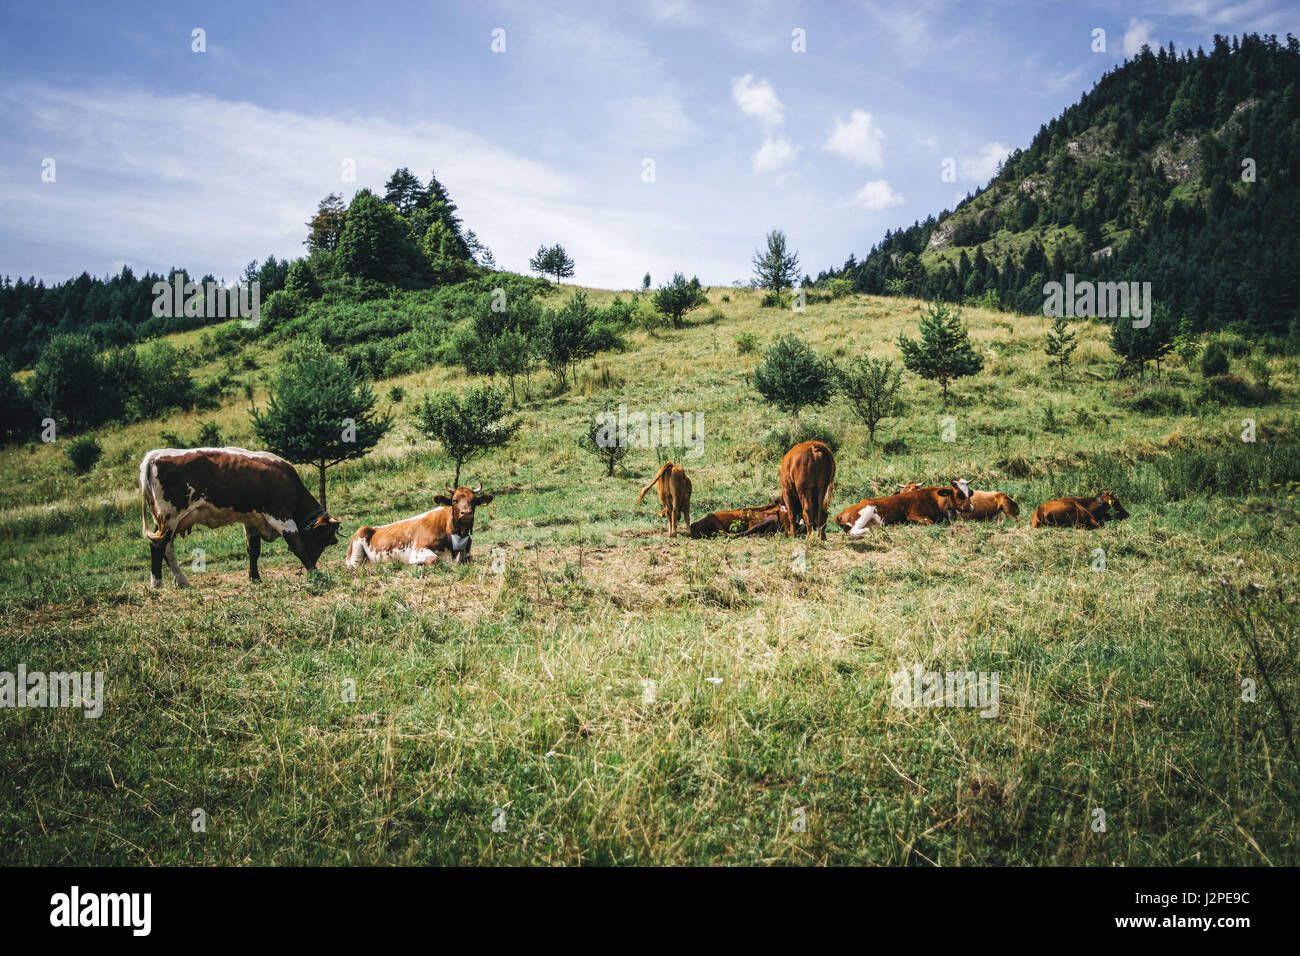 Cow herd on a hill in the Pieniny mountains in Poland. - Stock Image